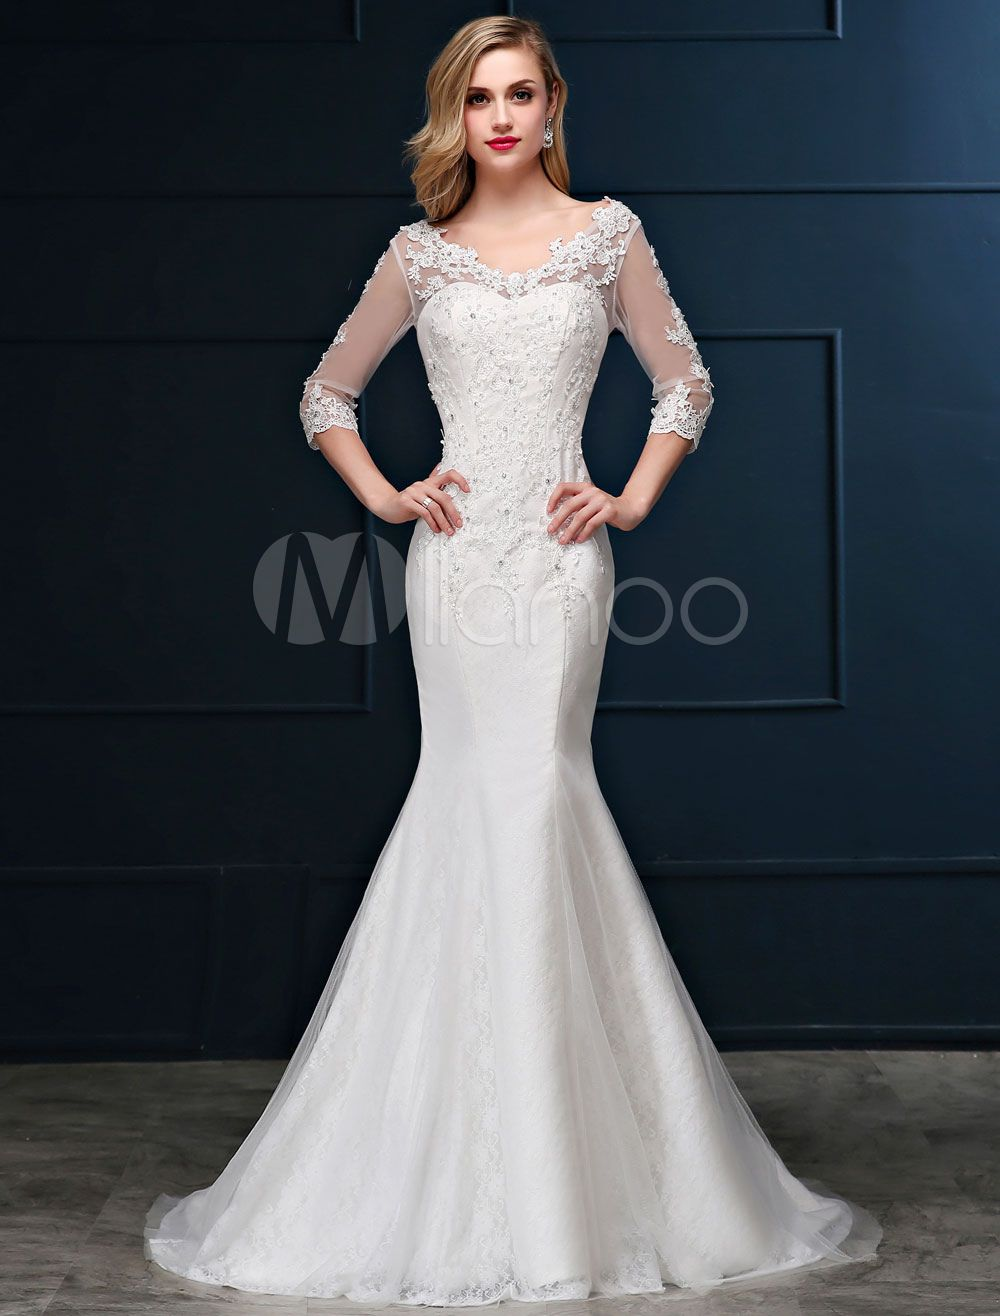 Mermaid wedding dress lace long sleeve bridal dress v neck beaded